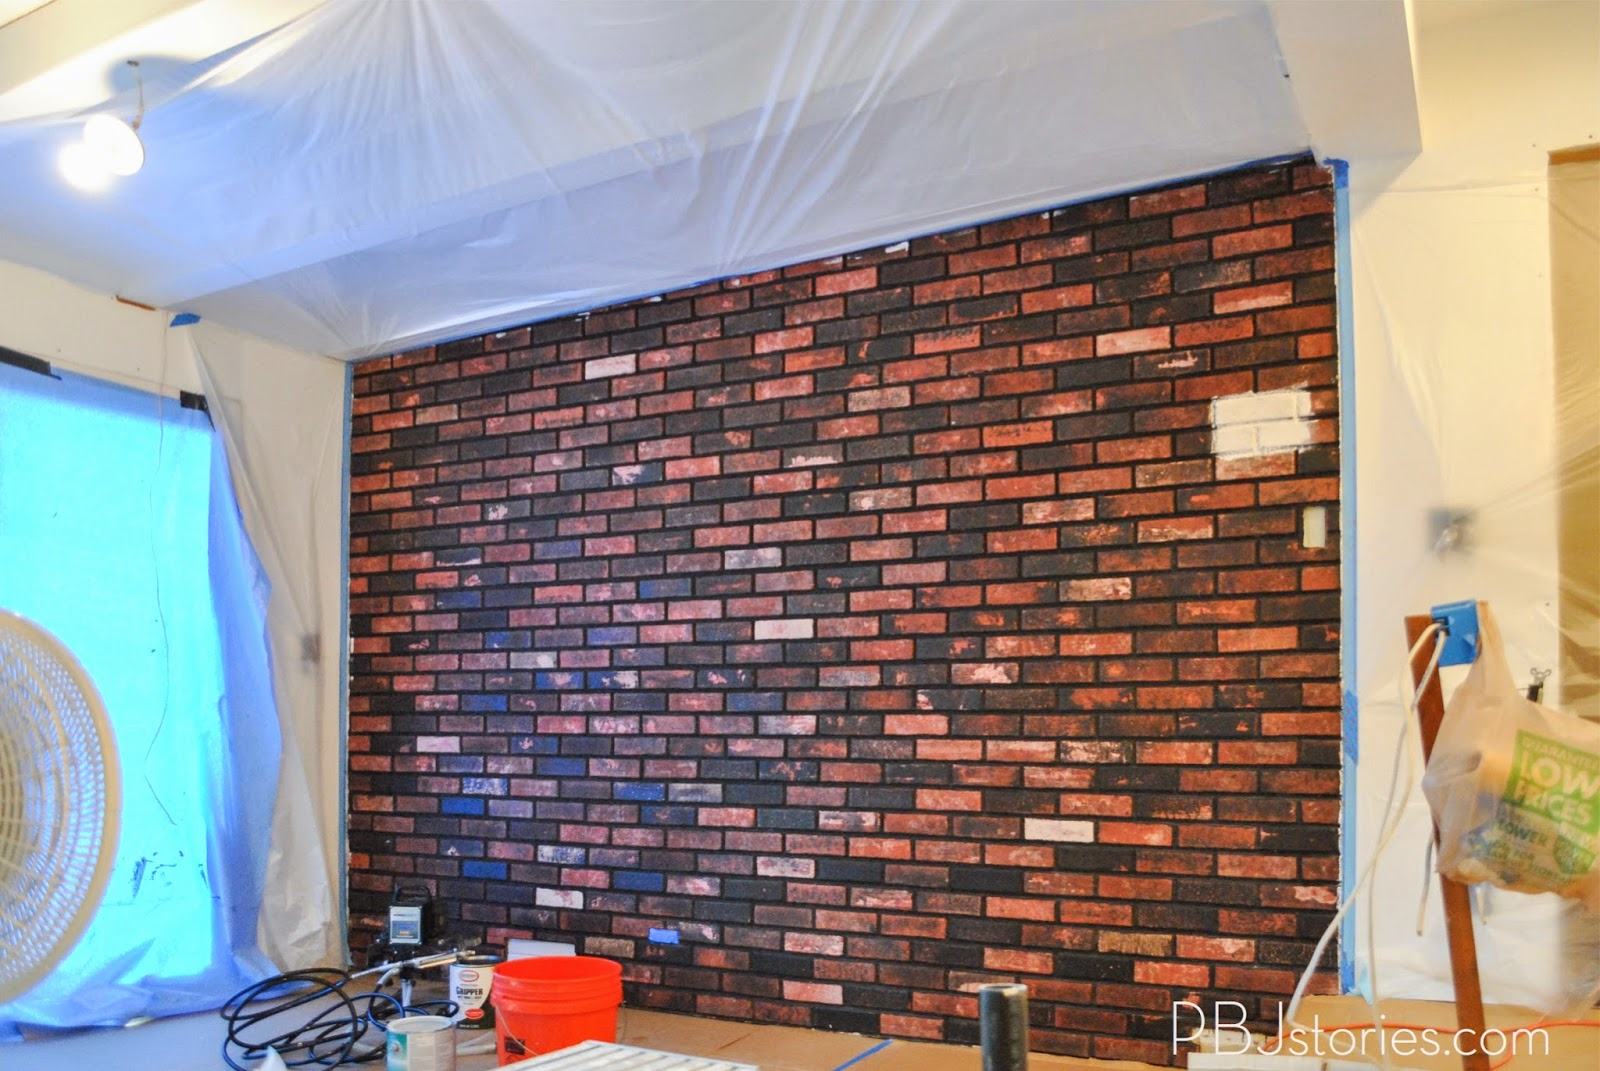 pbjstories how to paint an interior brick wall pbjreno. Black Bedroom Furniture Sets. Home Design Ideas